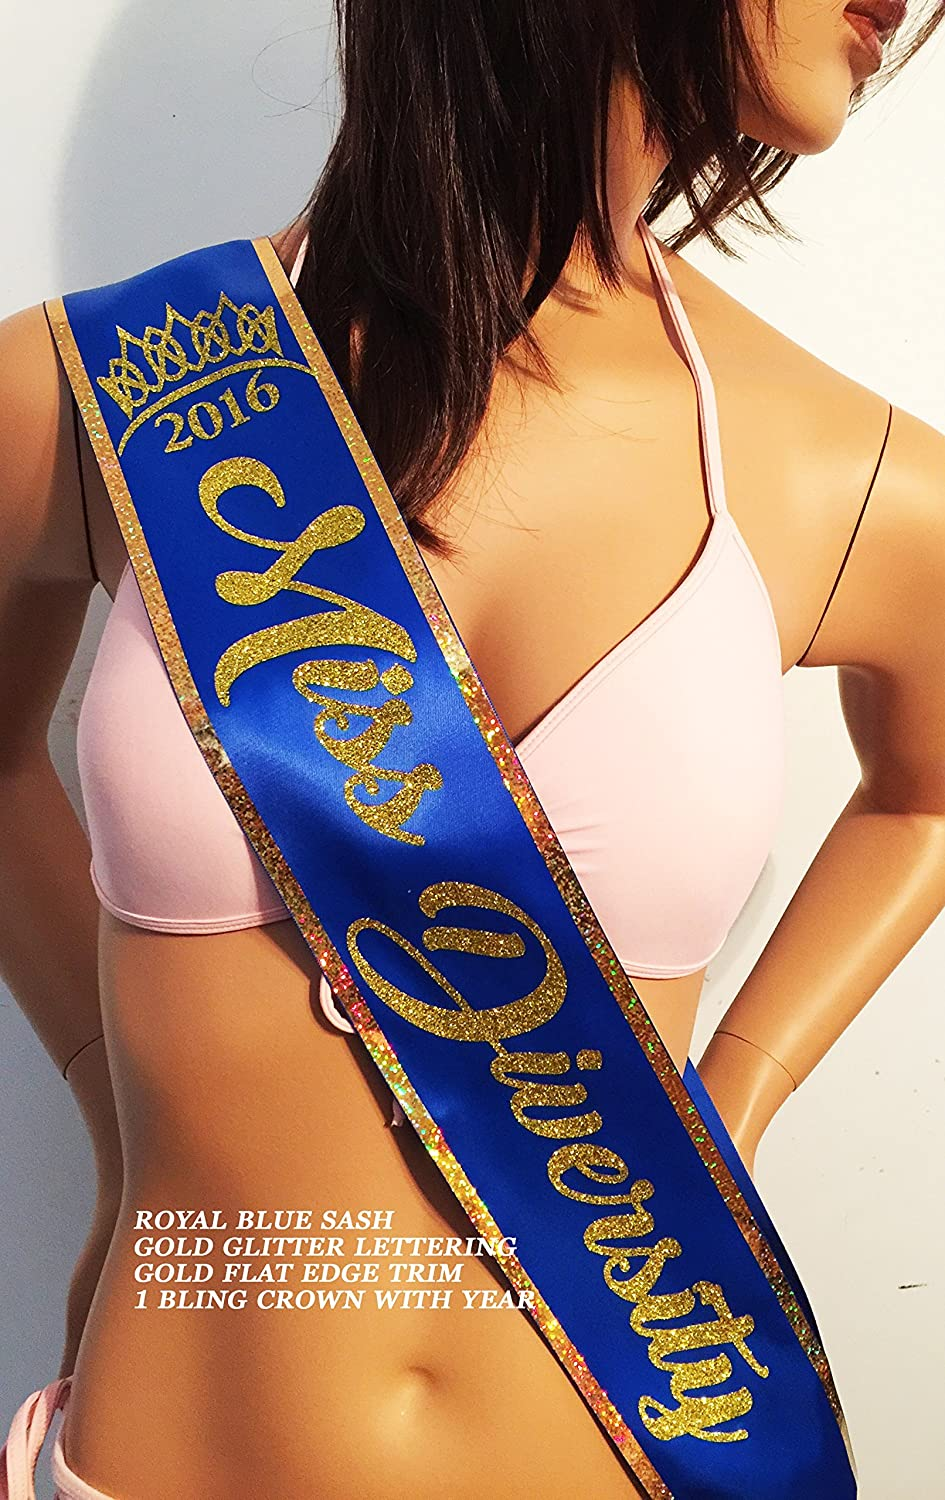 Pageant Sash, Corporate Awards, add your favorite Trim and Bling for extra sparkle at an additional cost By SashANation